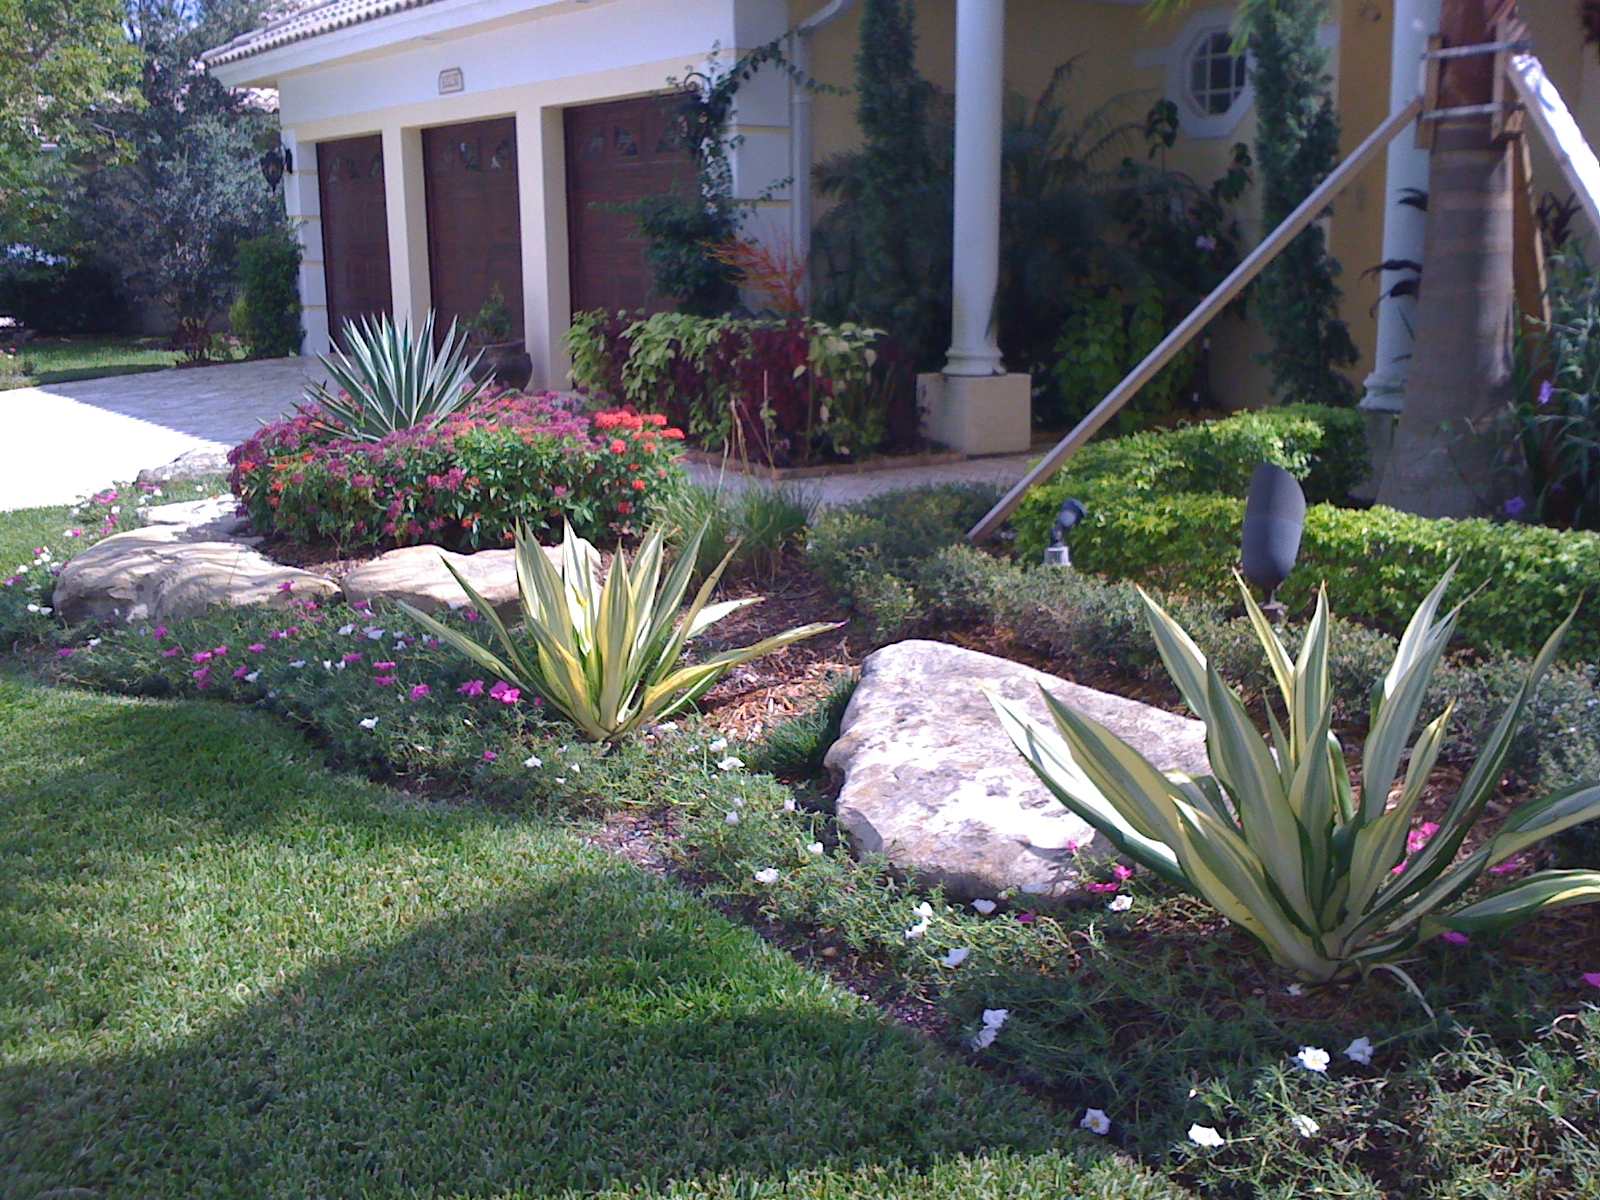 Landscaping Boca Raton, Lawn Service, Delray Beach | Total Maintenance Inc.